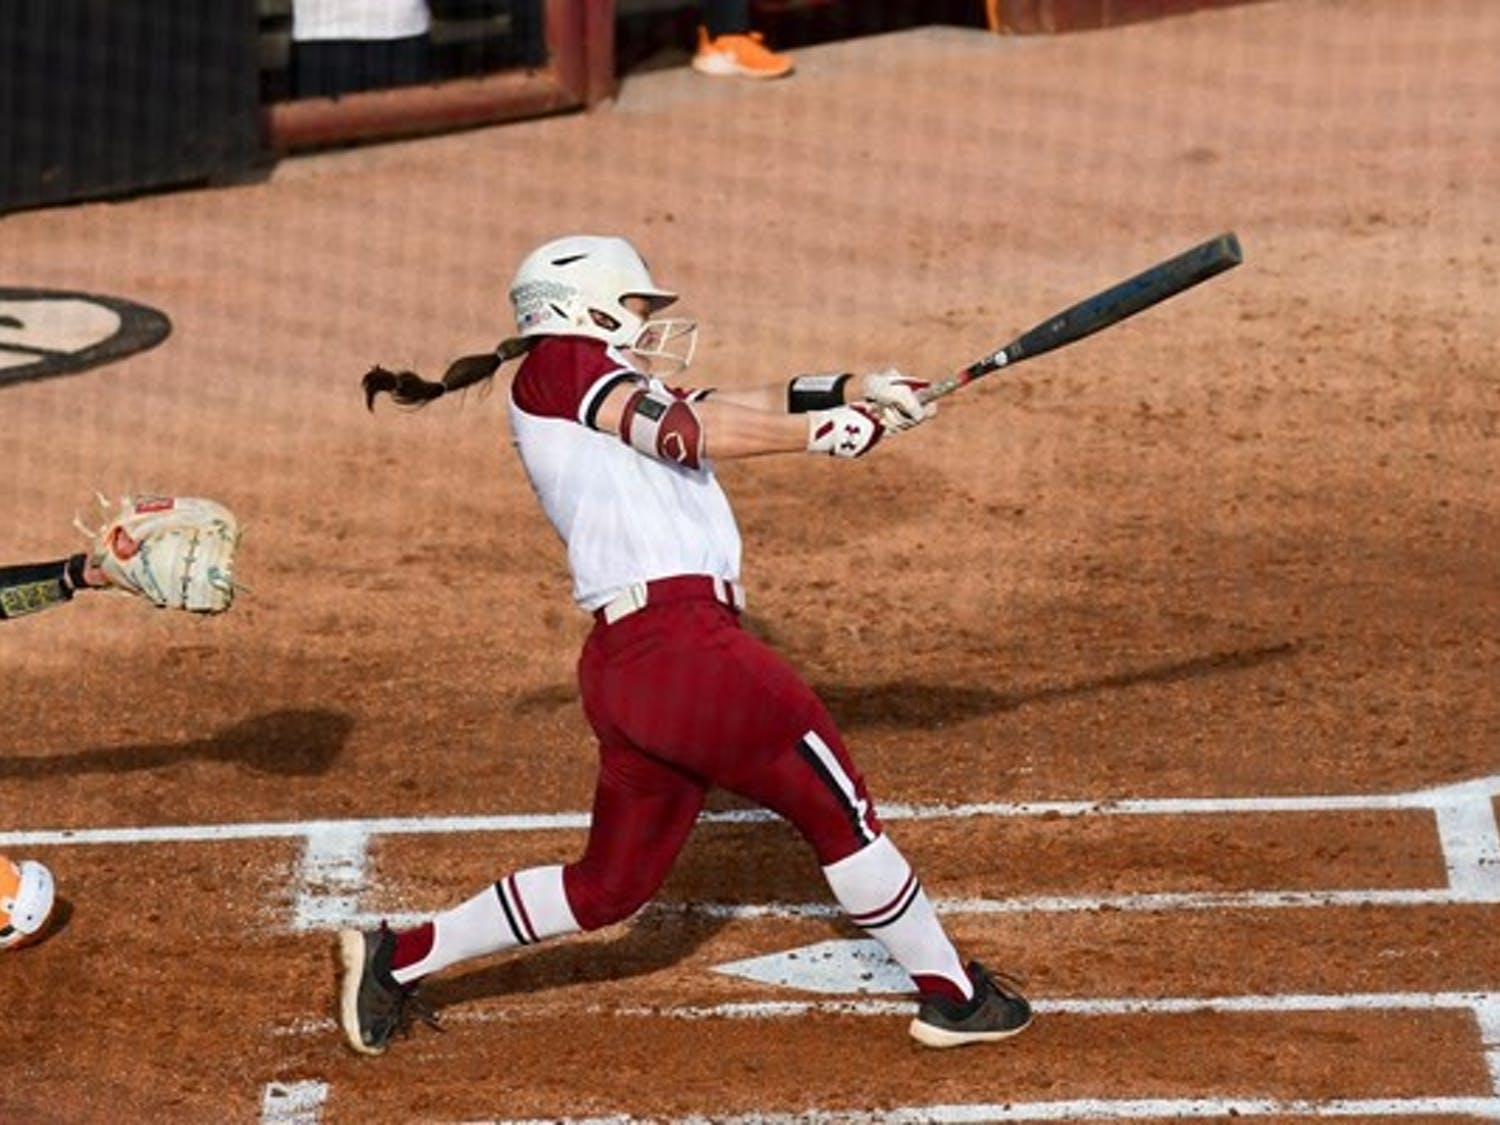 Graduate student infielder Mackenzie Boesel swings at a ball pitched by the opposing